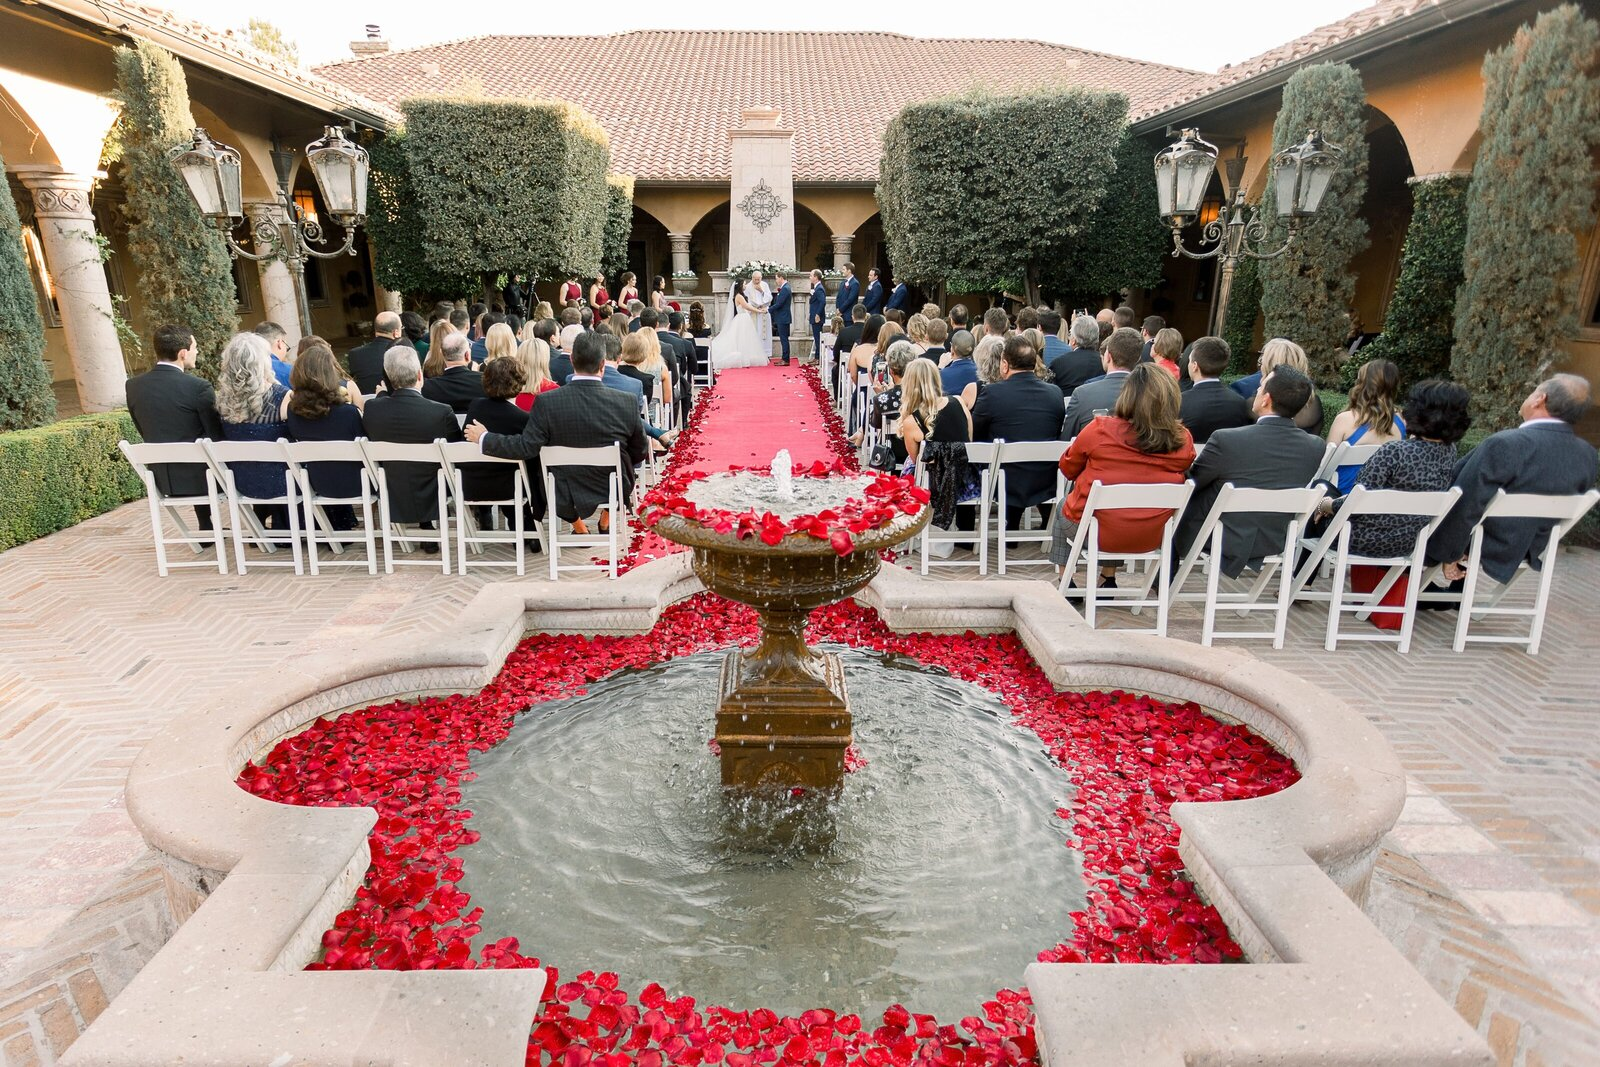 ceremony-with-red-rose-petals